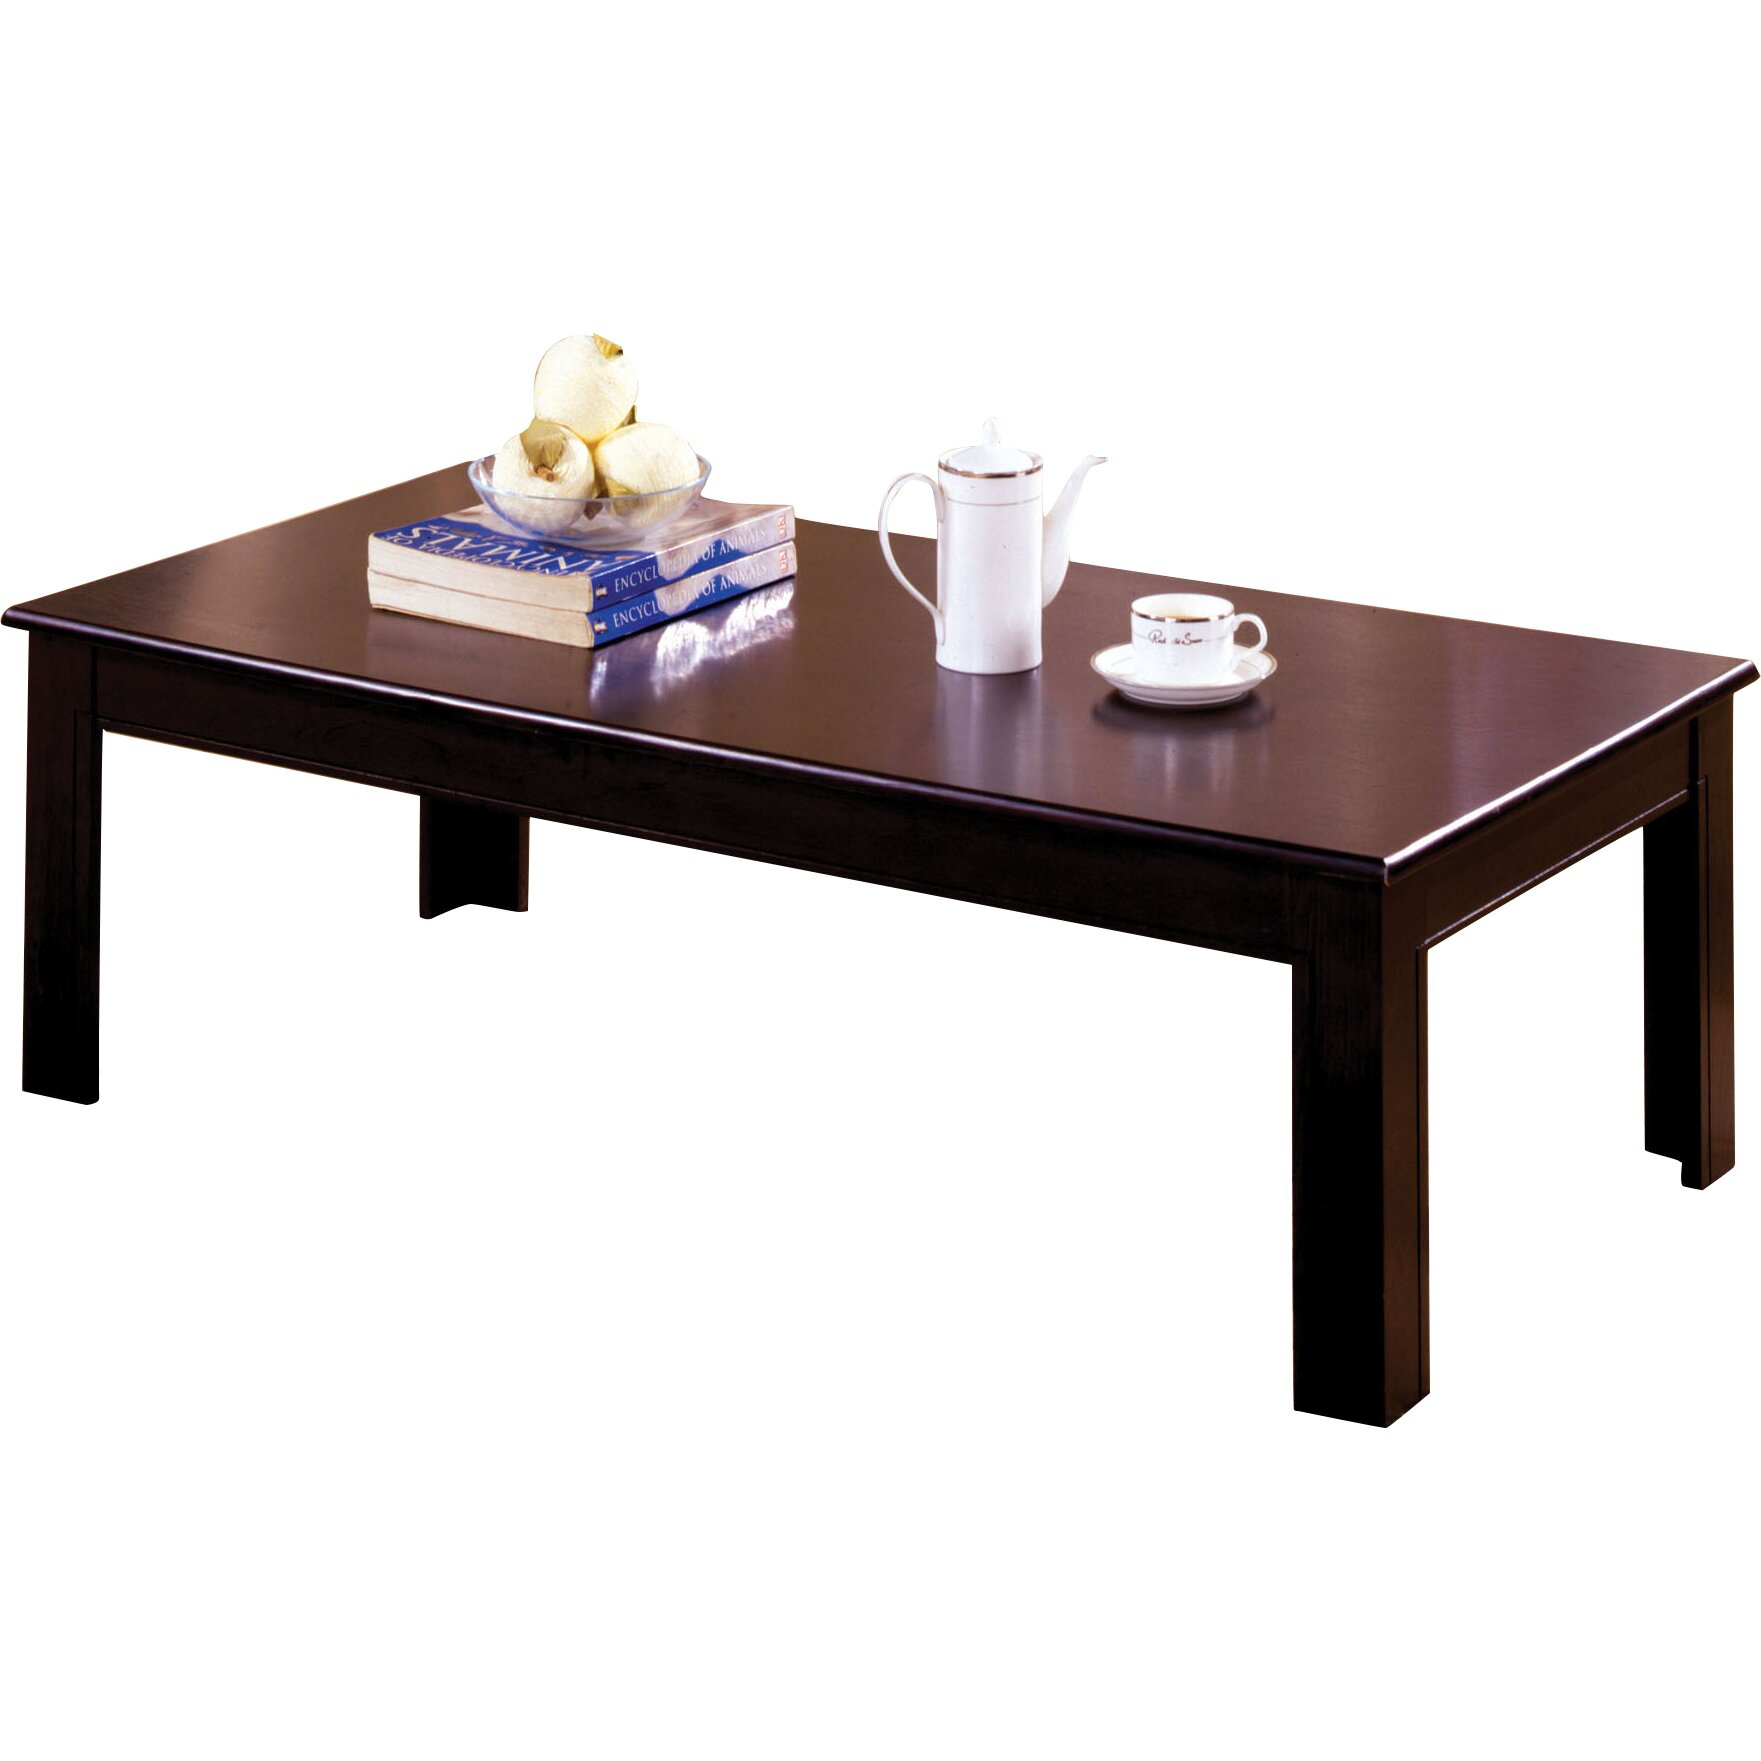 Hokku Designs Frixe 3 Piece Coffee Table Set Reviews Wayfair